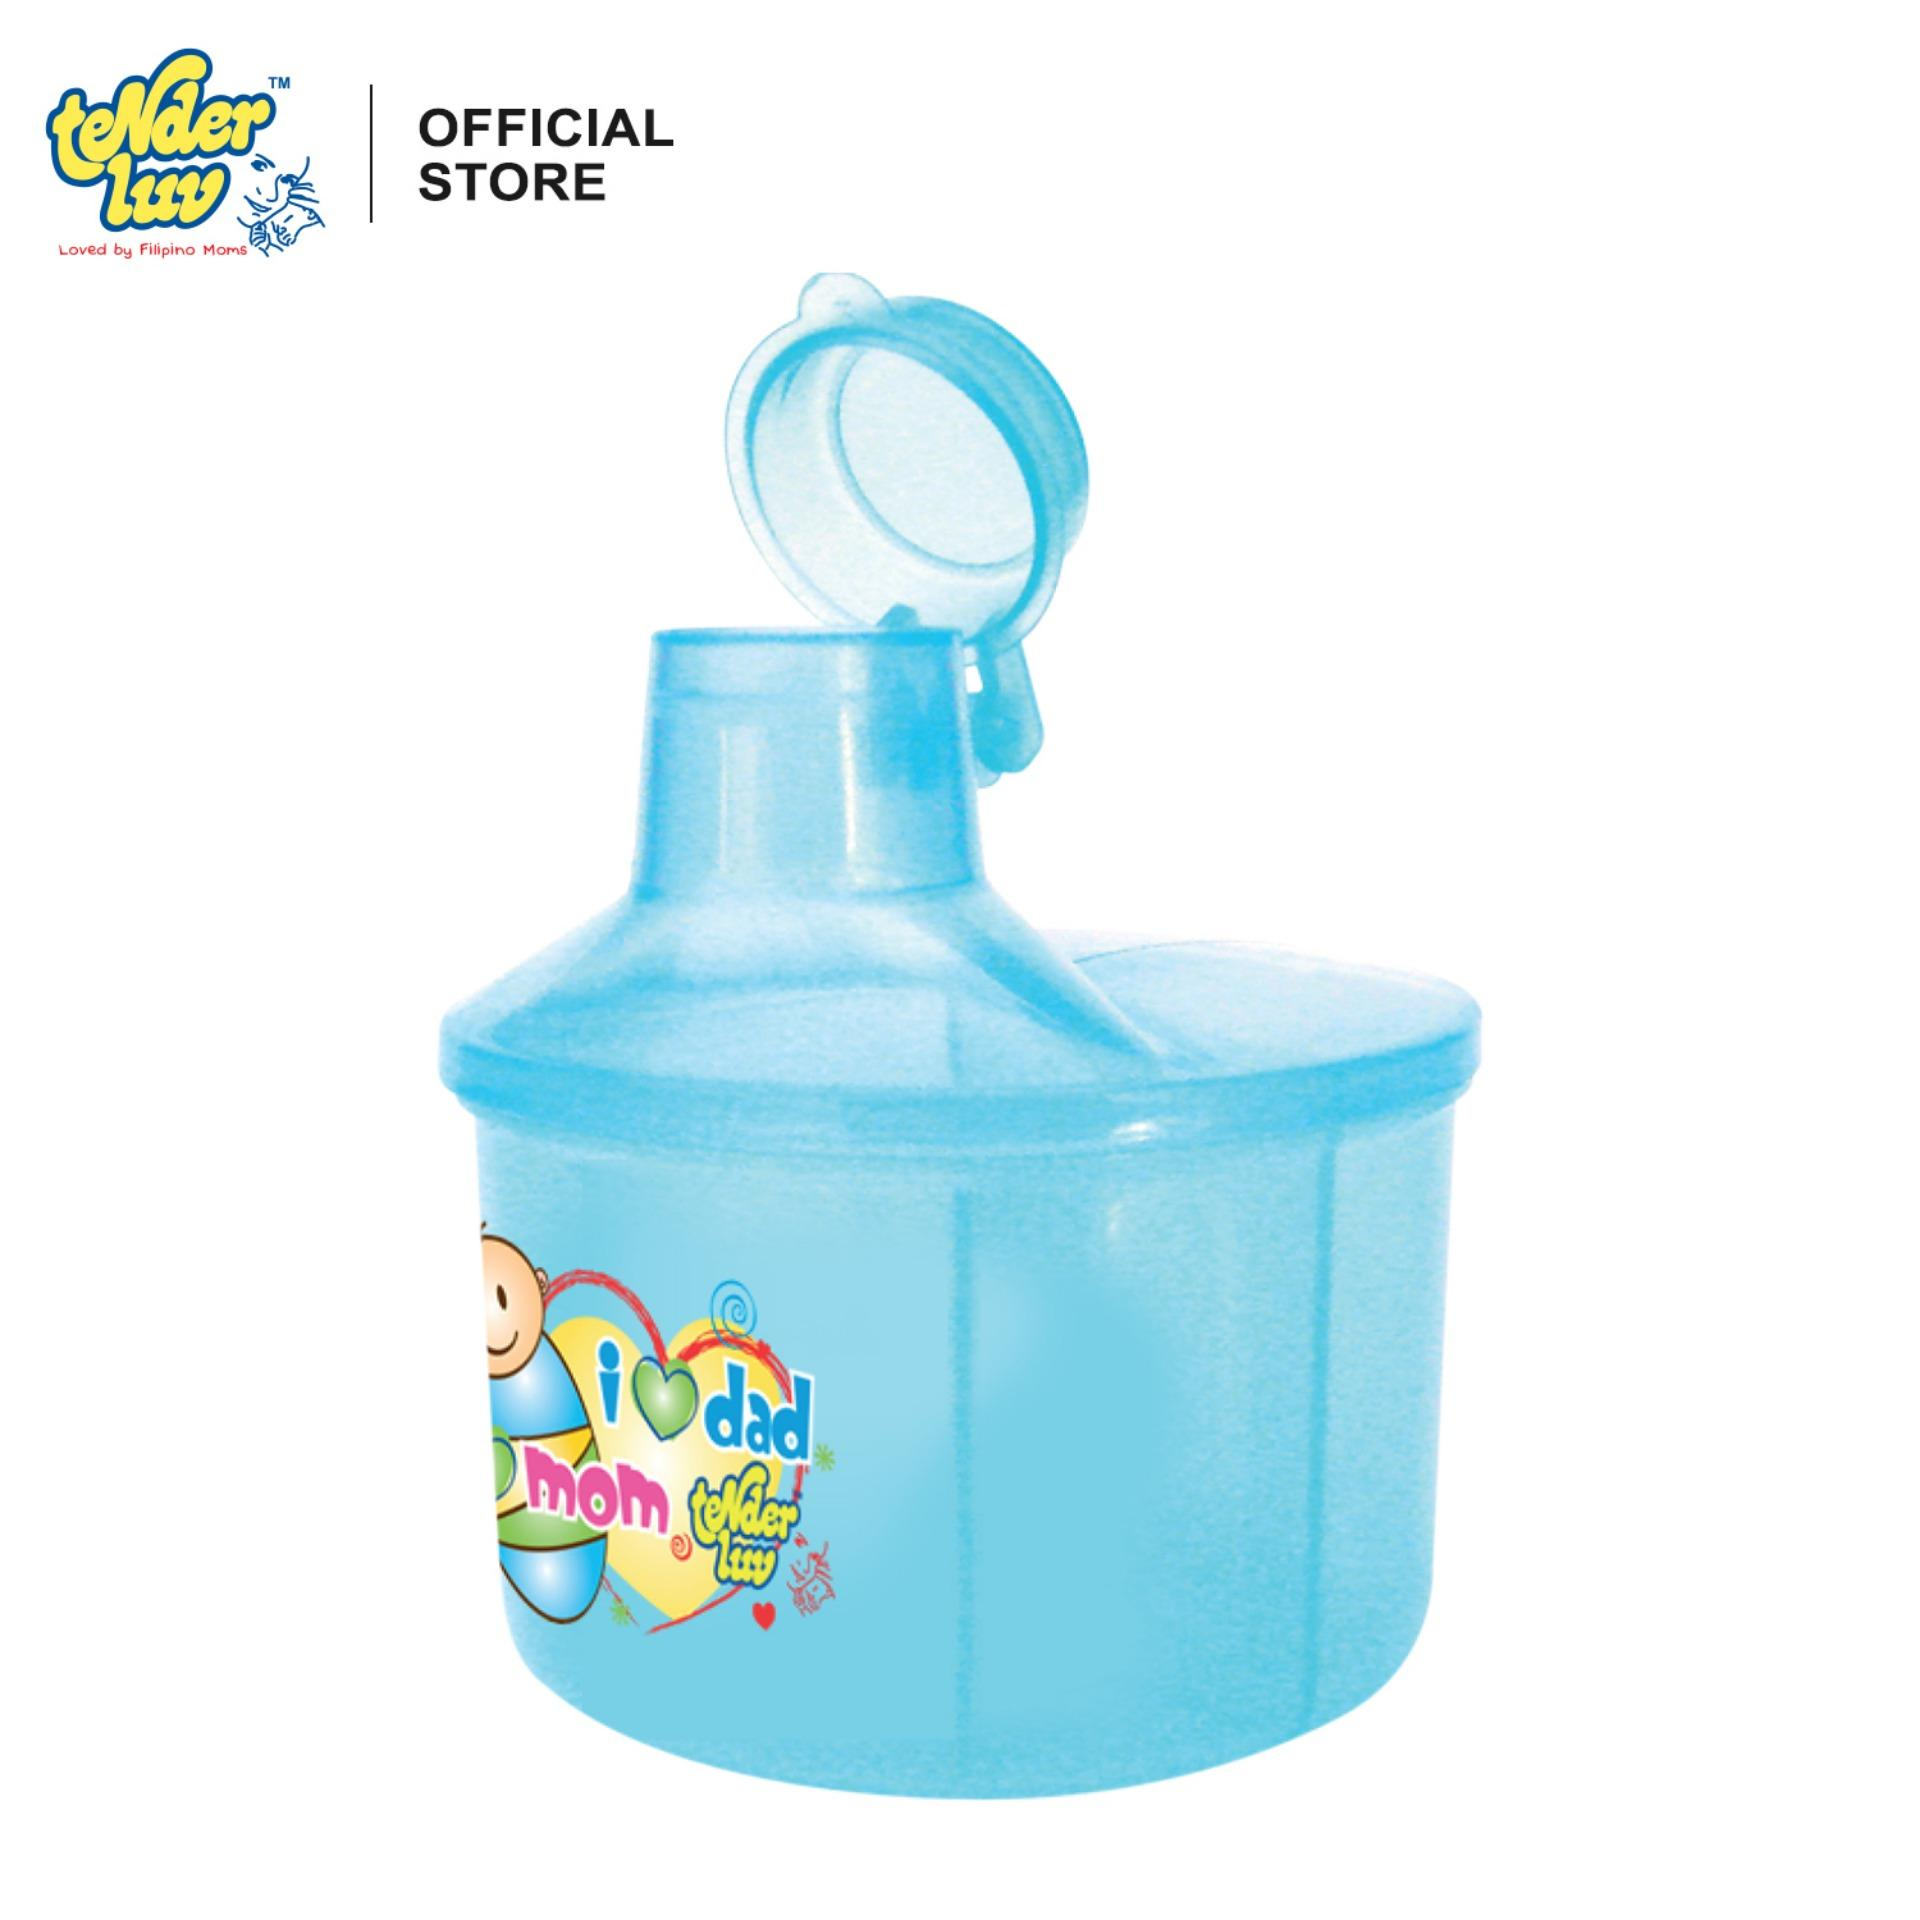 Tender Luv Revolving Milk Powder Container